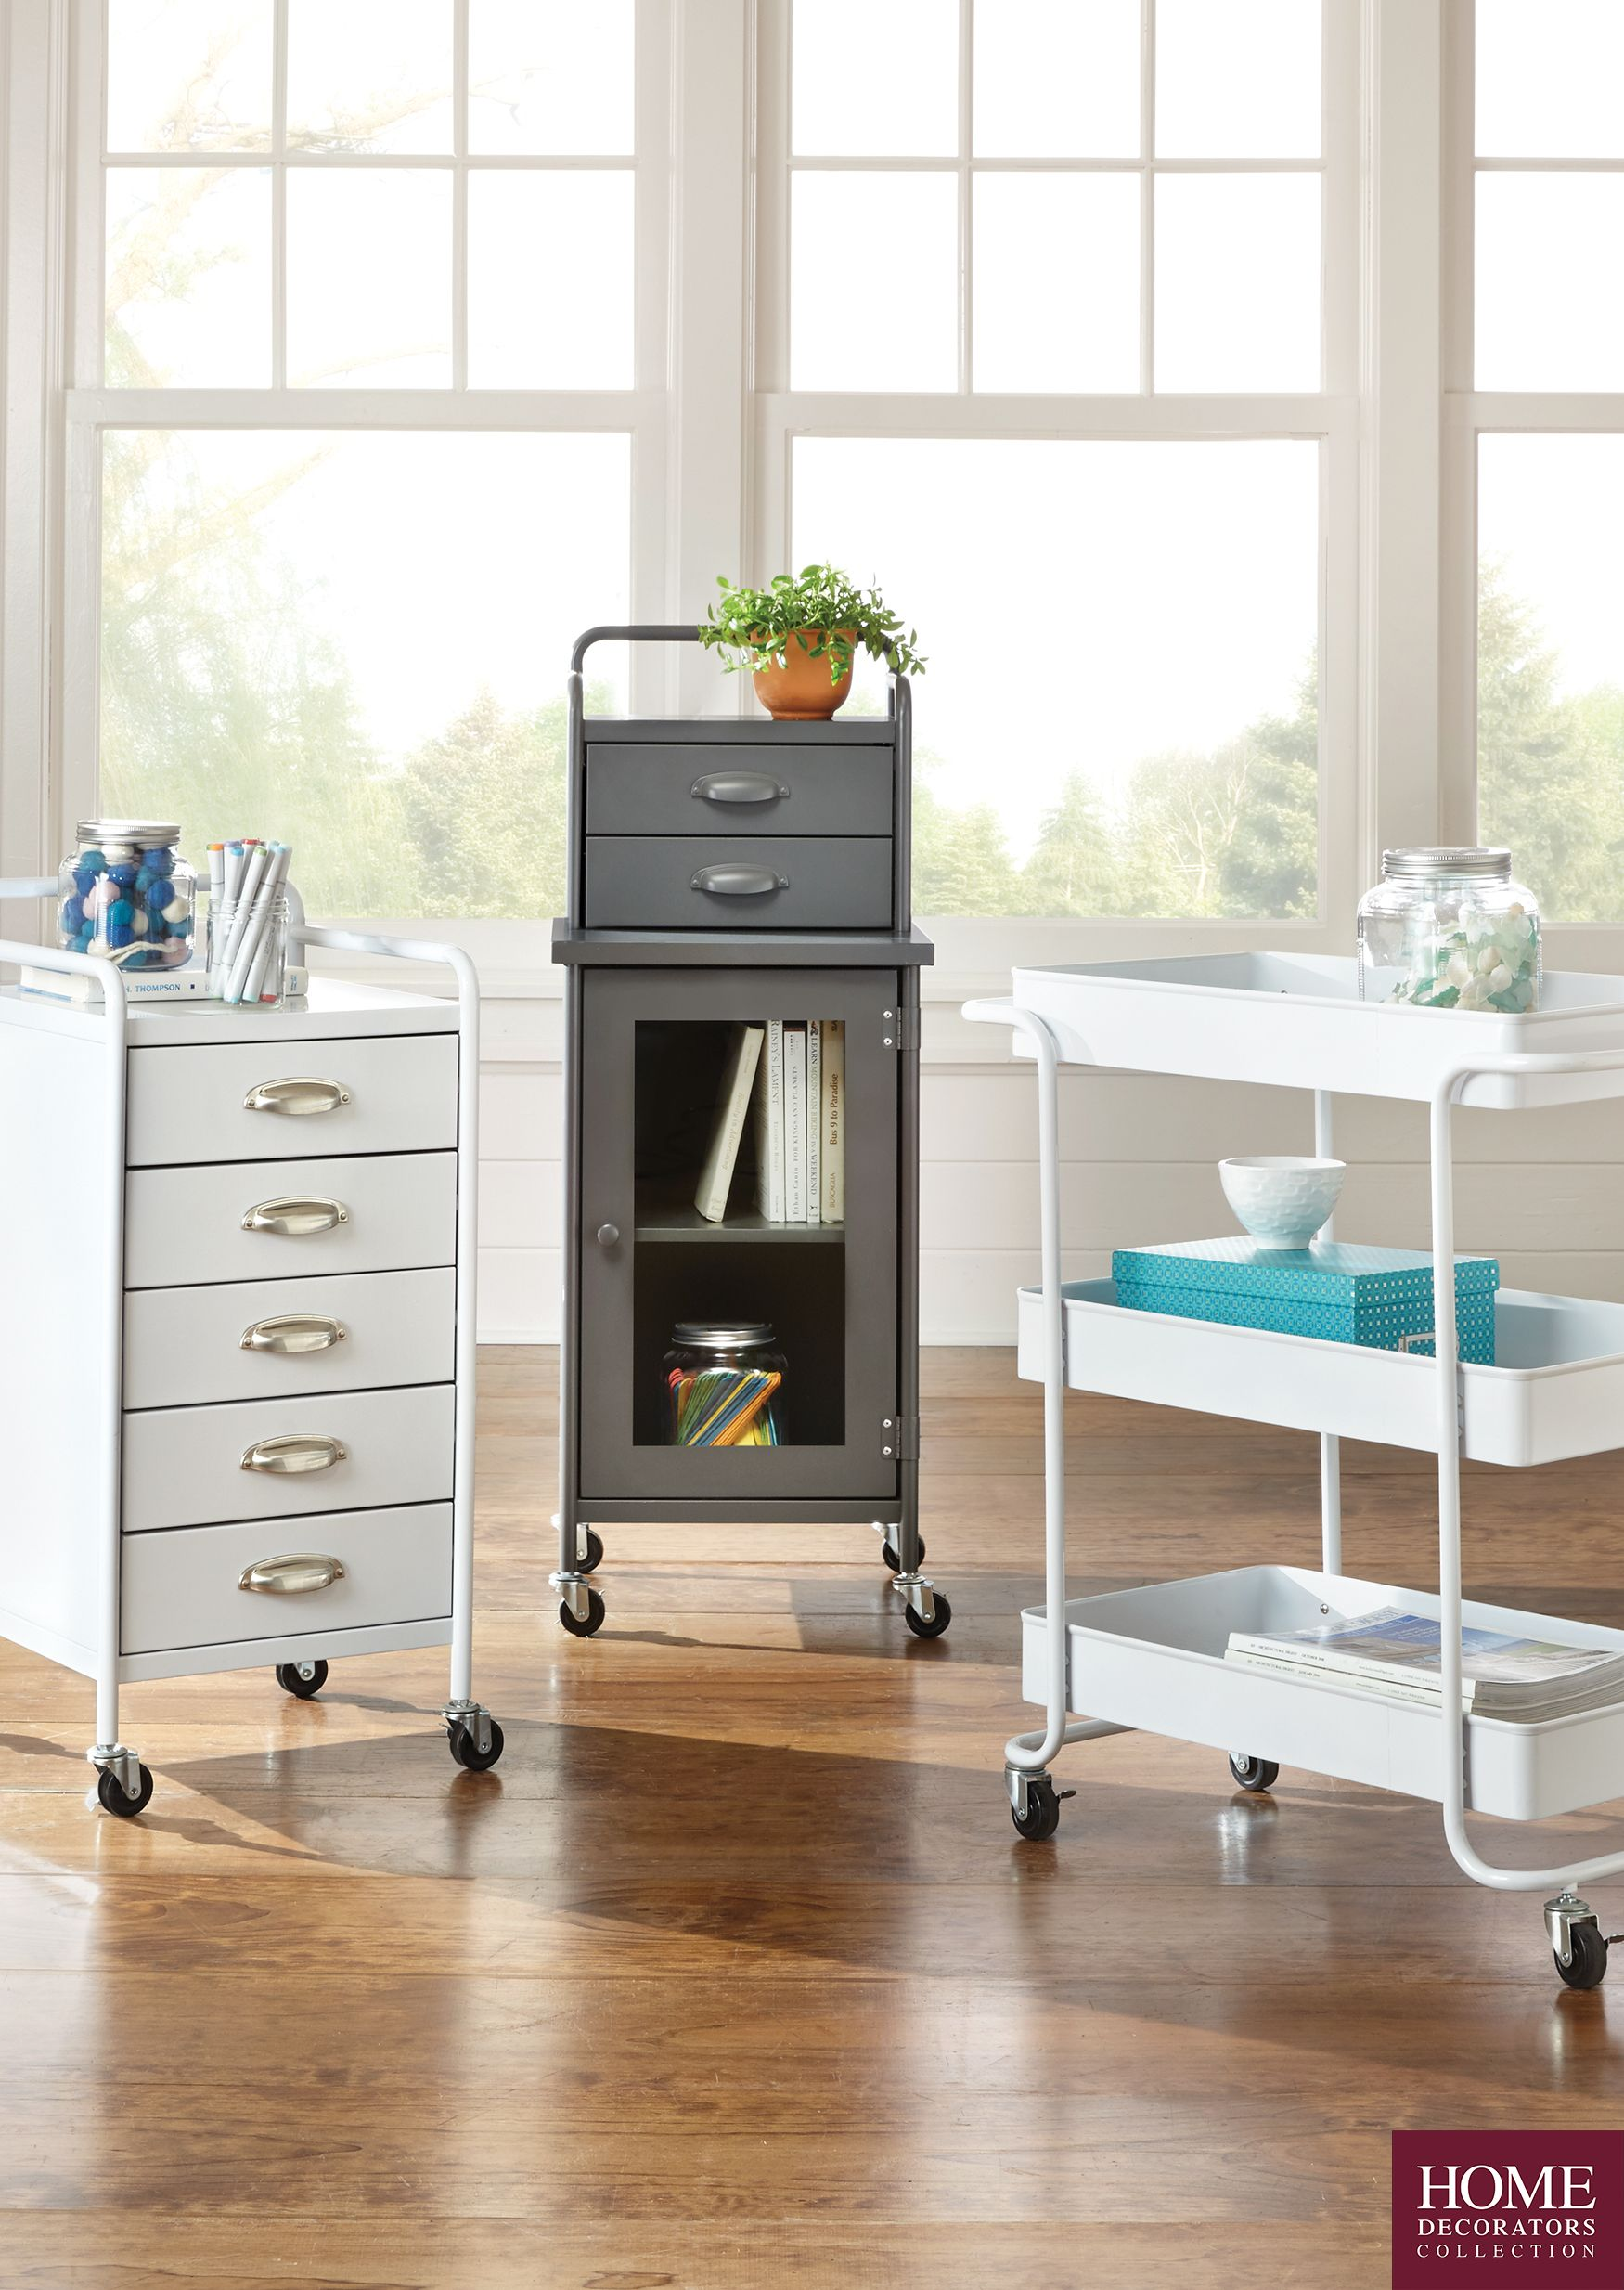 Whether For Your Dorm Or Apartment A Mobile Cart Like This Adds Major Storage And Some Sty Dorm Room Organization Dorm Organization Home Decorators Collection